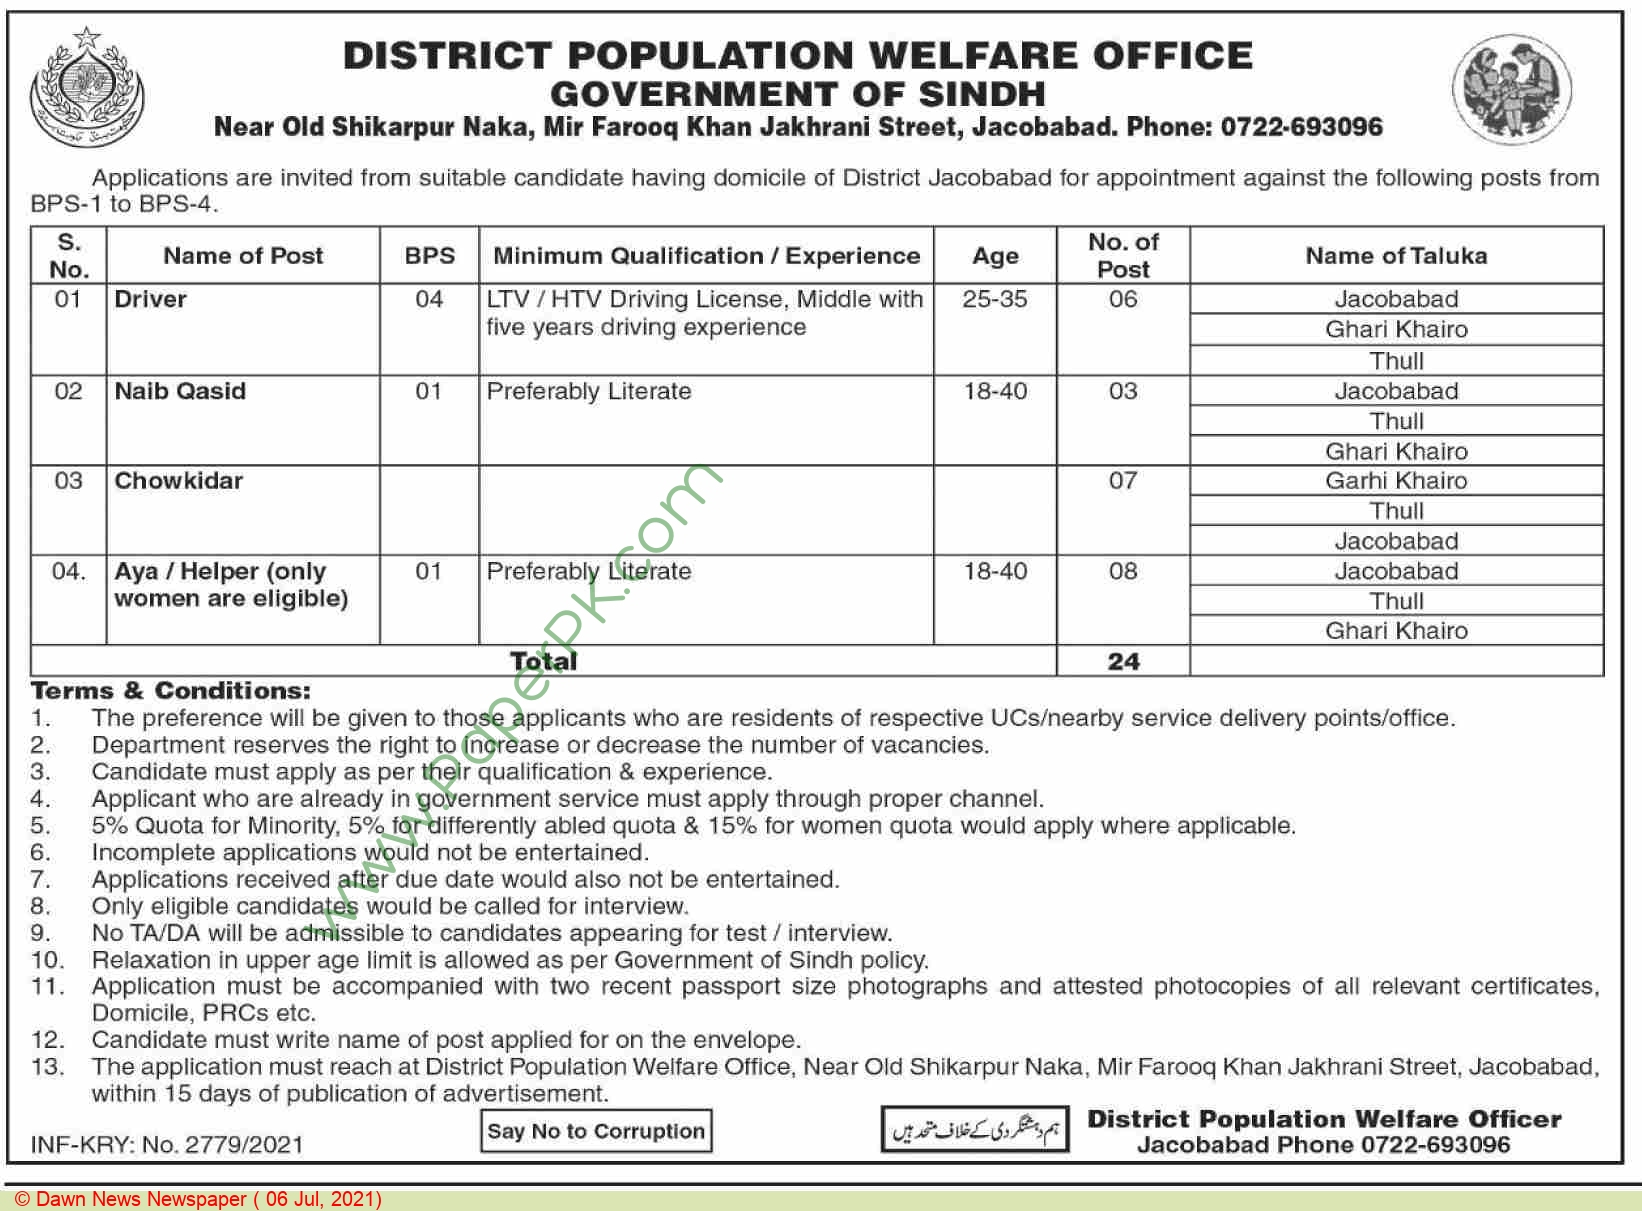 District Population Welfare Office jobs newspaper ad for Chowkidar in Jacobabad on 2021-07-06